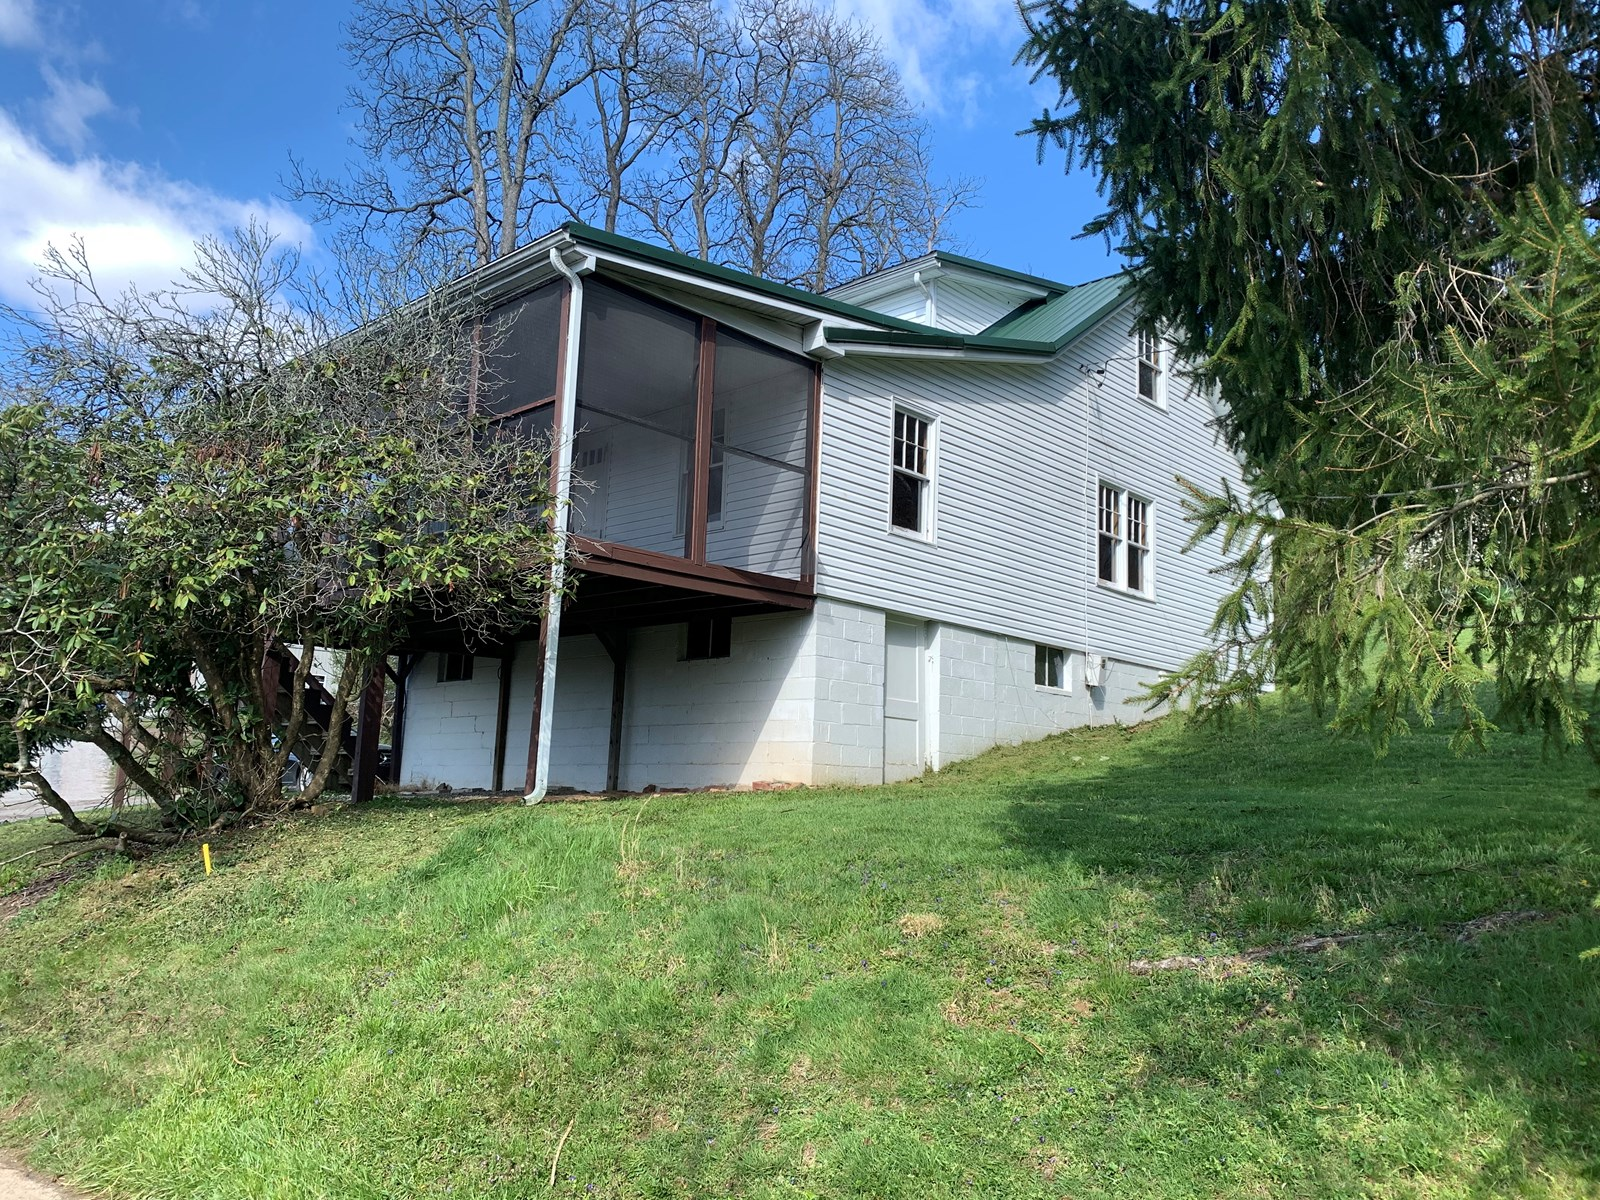 WOW! CHECK OUT THIS HIDDEN GEM IN BUCKHANNON WV